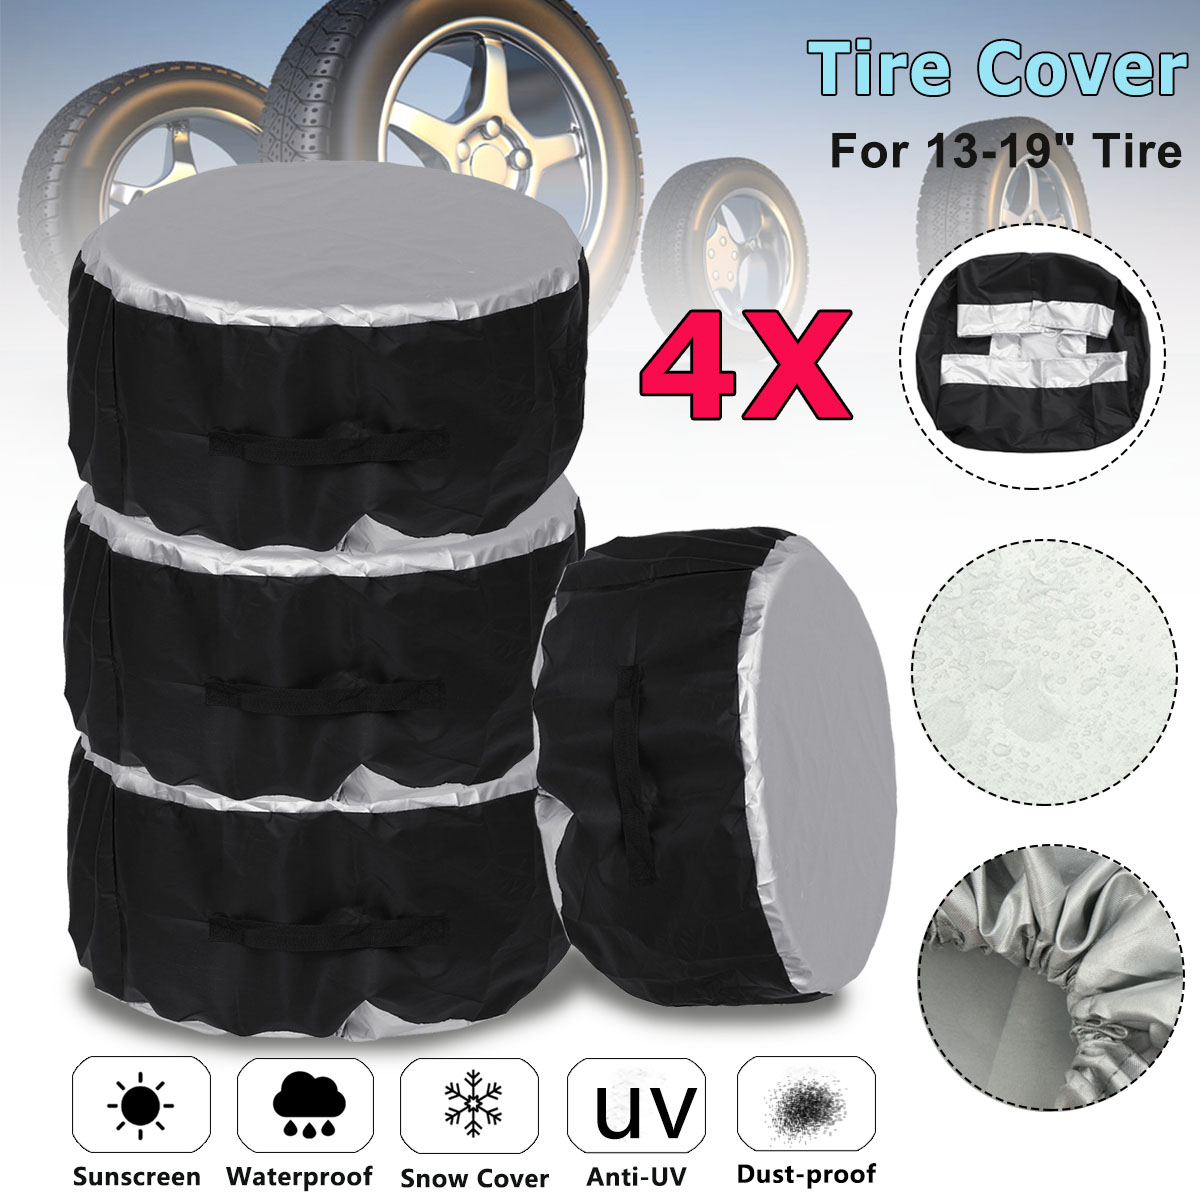 4 stuks Universele 13-19 16-20inch Auto SUV Tire Cover Case Reservewiel Wiel Tas Tyre spare Opslag Tote Polyester Oxford Doek